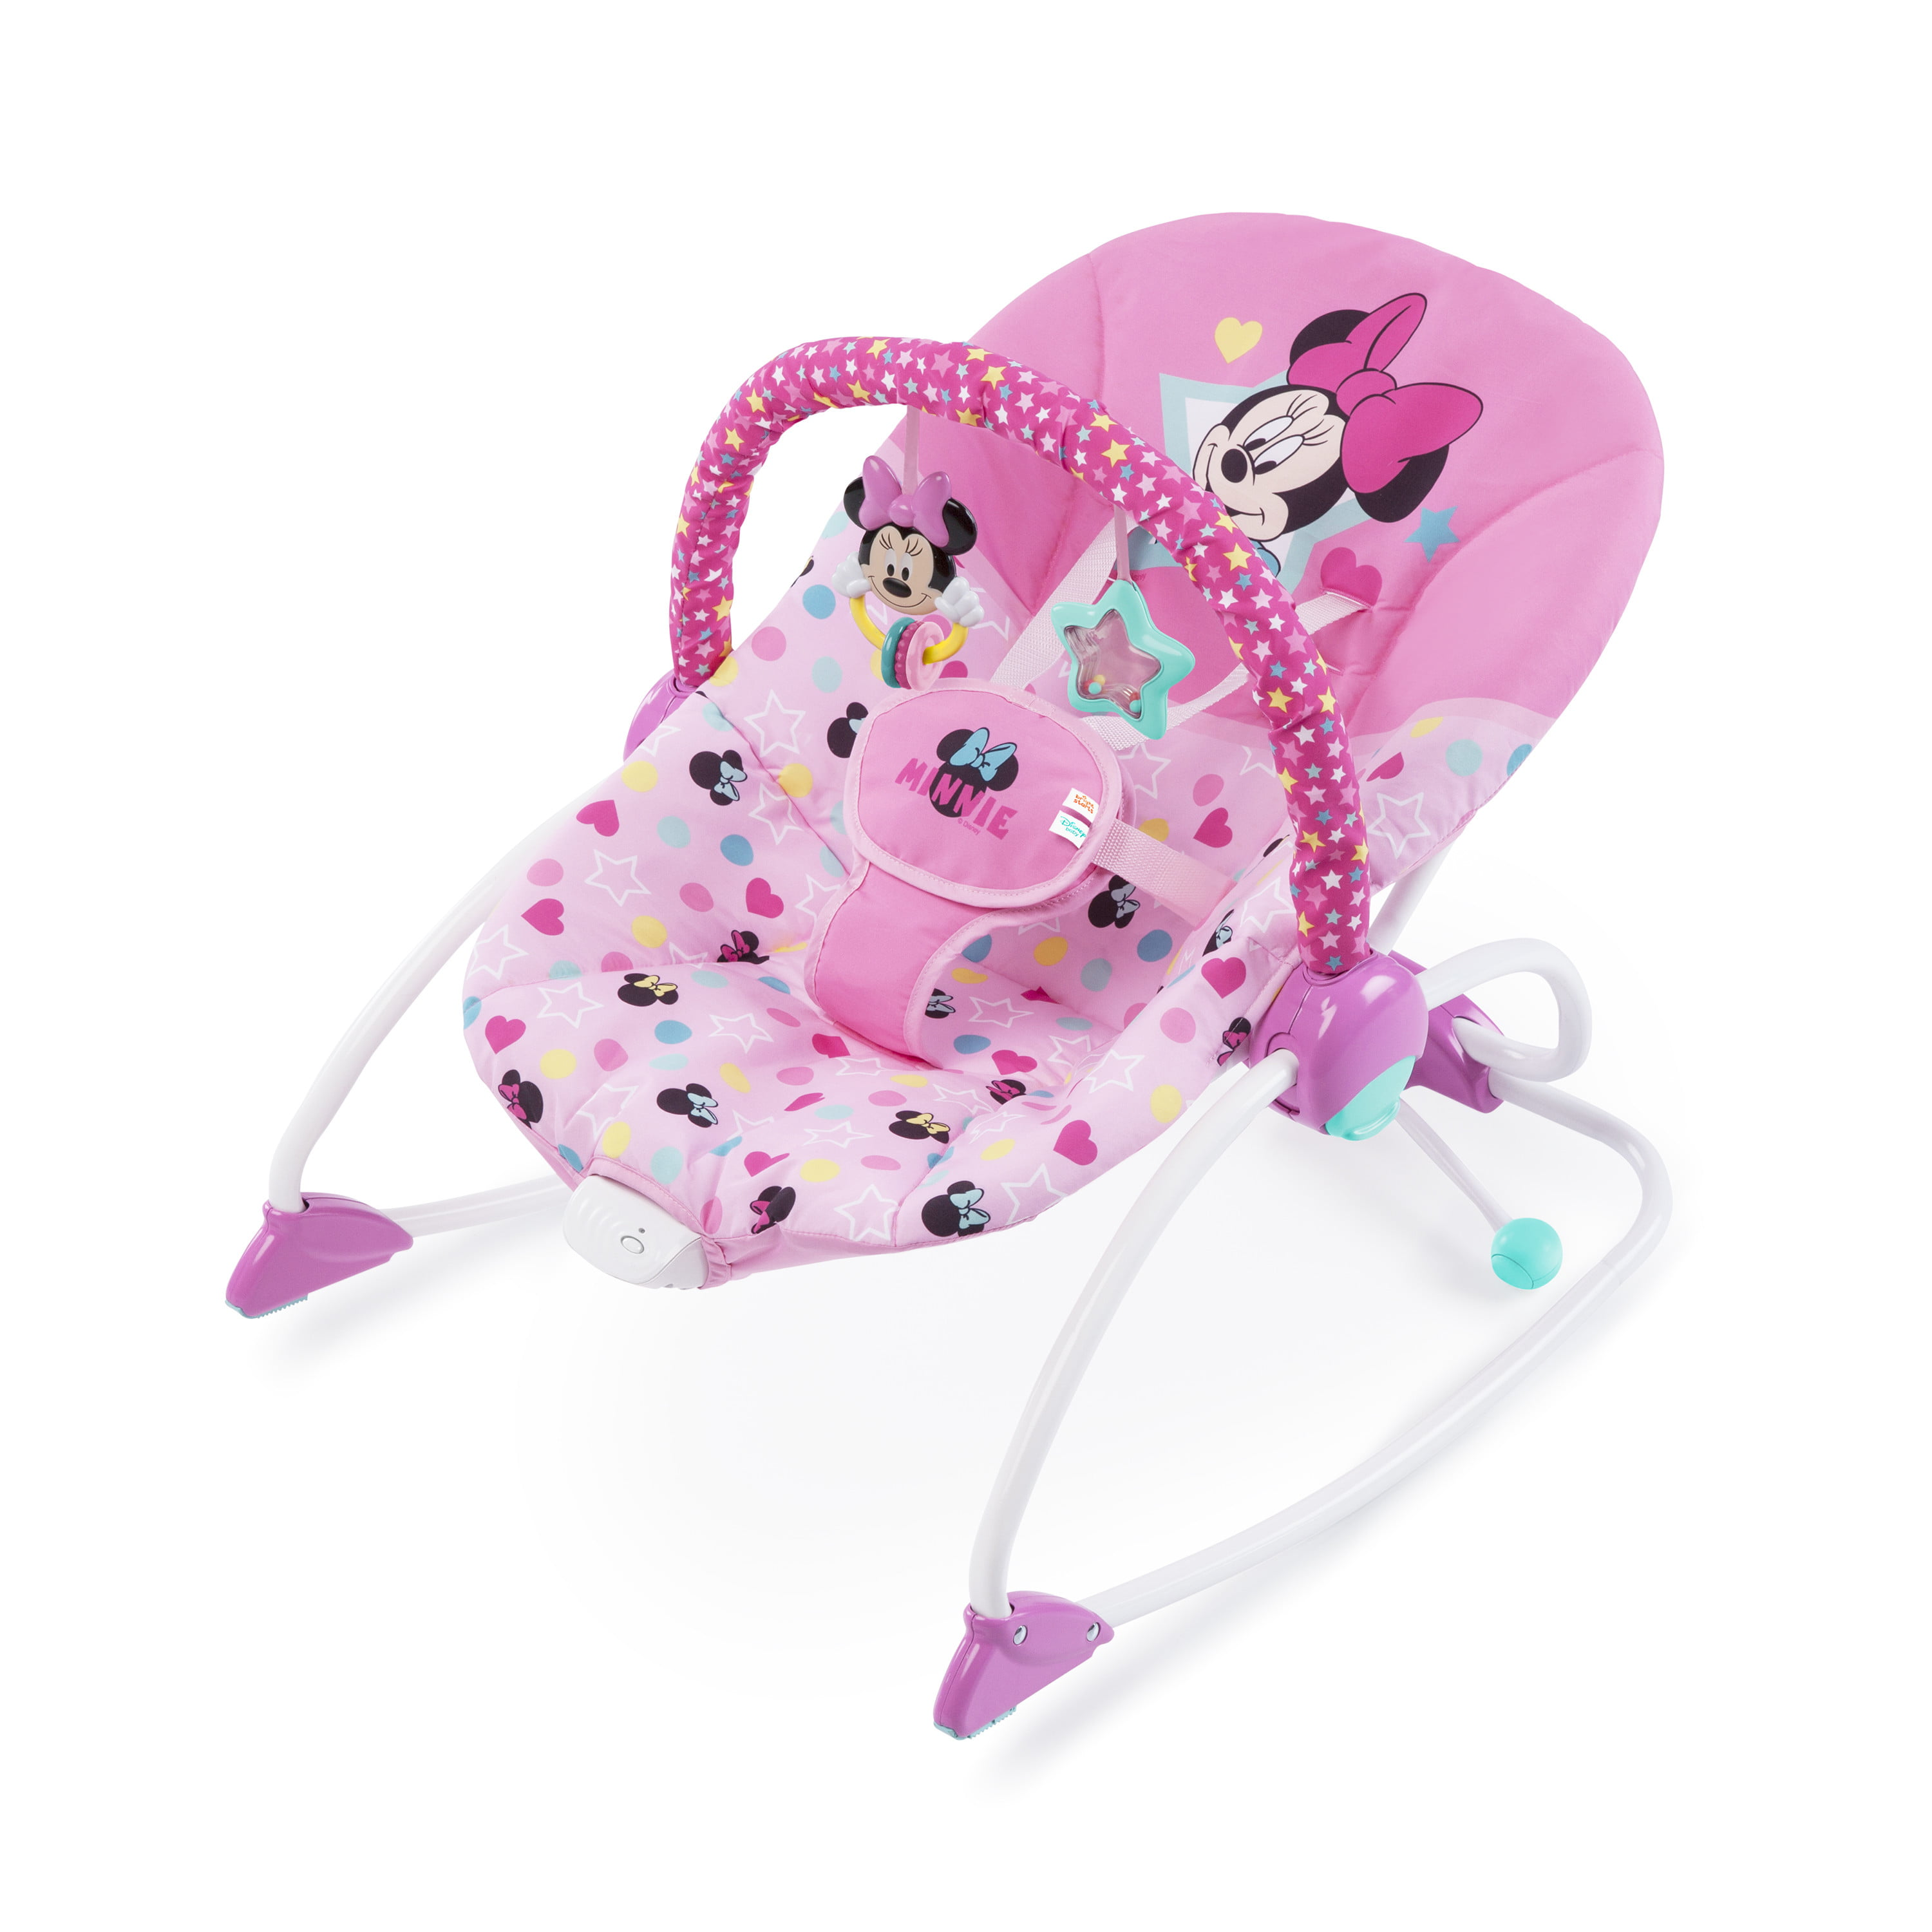 Bright Starts Disney Baby Minnie Mouse Stars & Smiles Infant to Toddler  Rocker with Soothing Vibration, Ages Newborn + - Walmart.com - Walmart.com